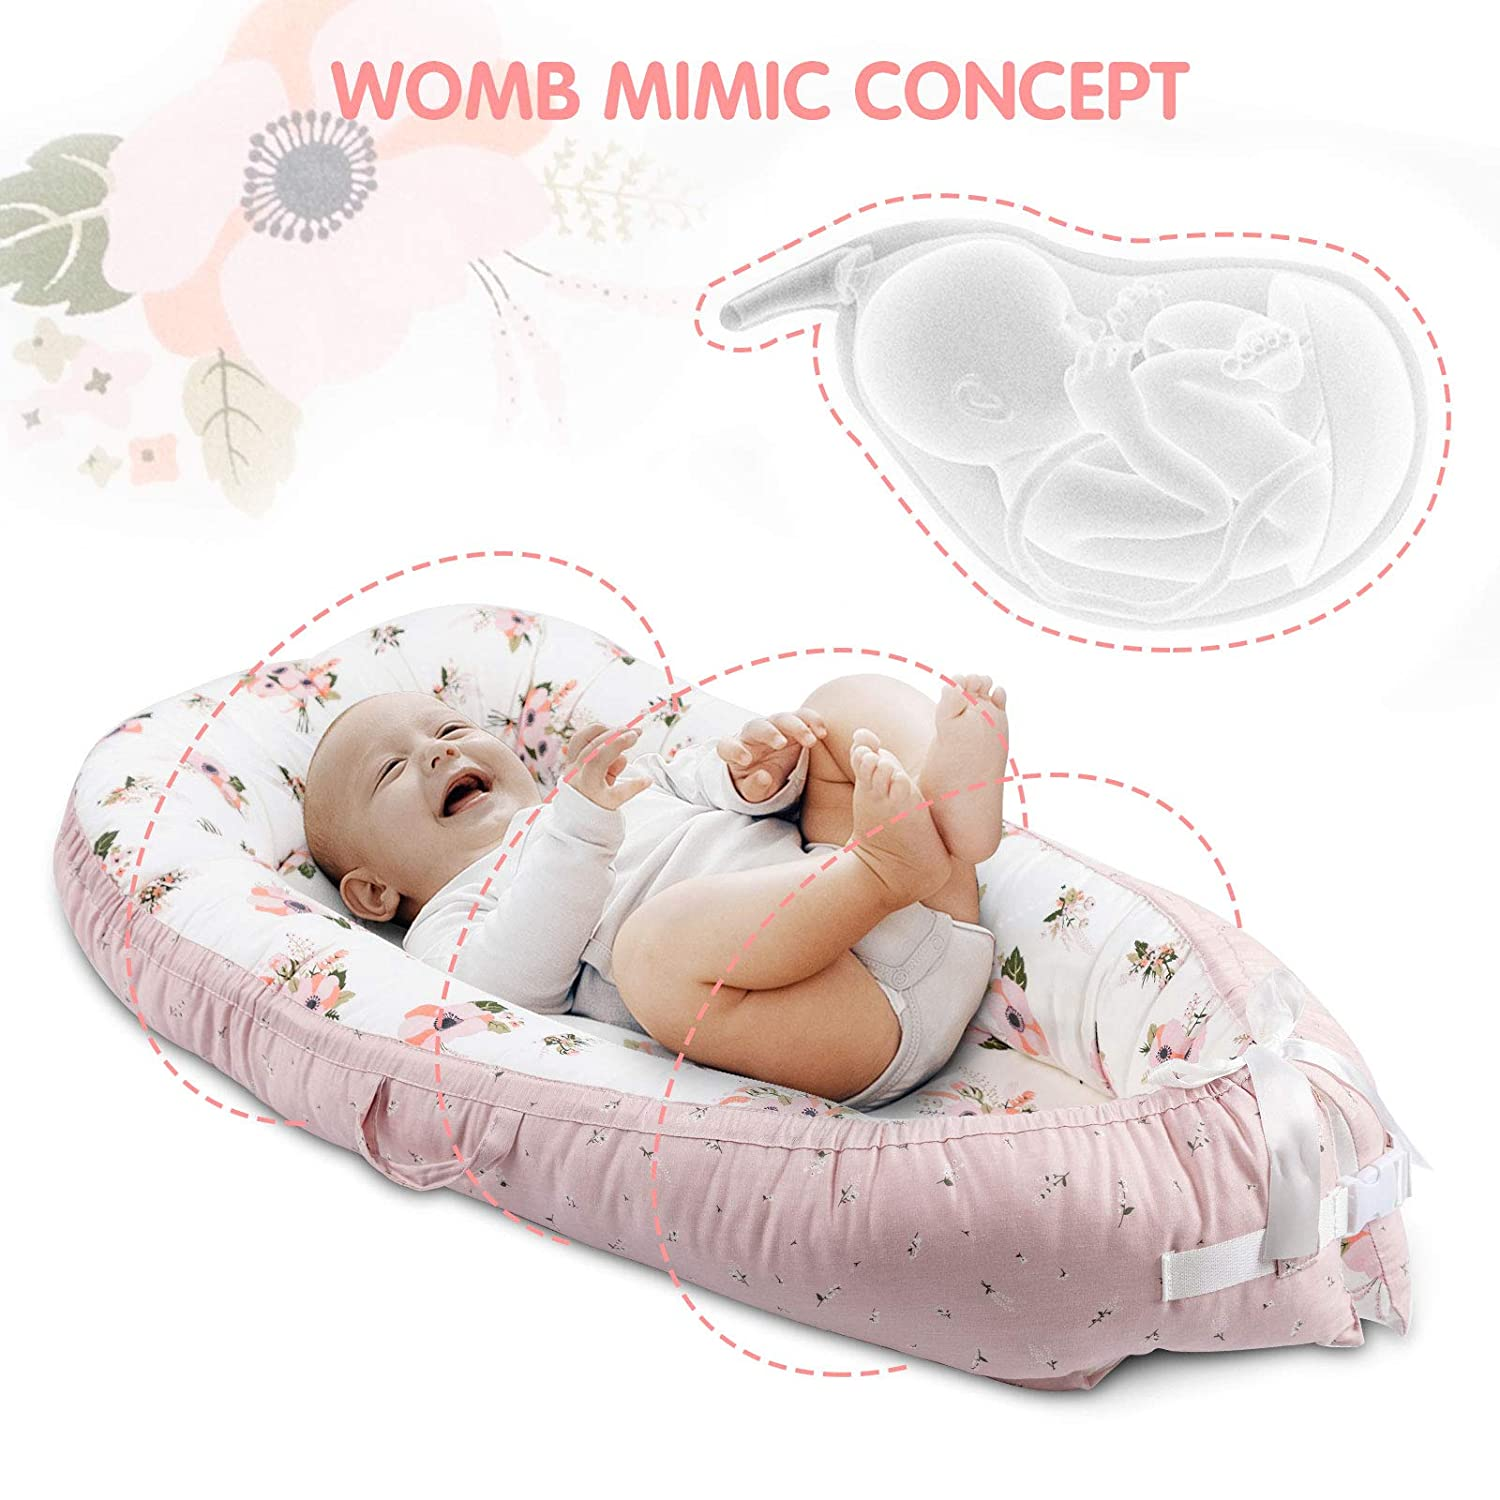 Baby Lounger /& Baby Nest Pink Blossom Portable Newborn Lounger for Baby Bassinet Reversible Infant Lounger Bed Durable and Machine Washable Adjustable Bed for Babies Aged 0-12 Months